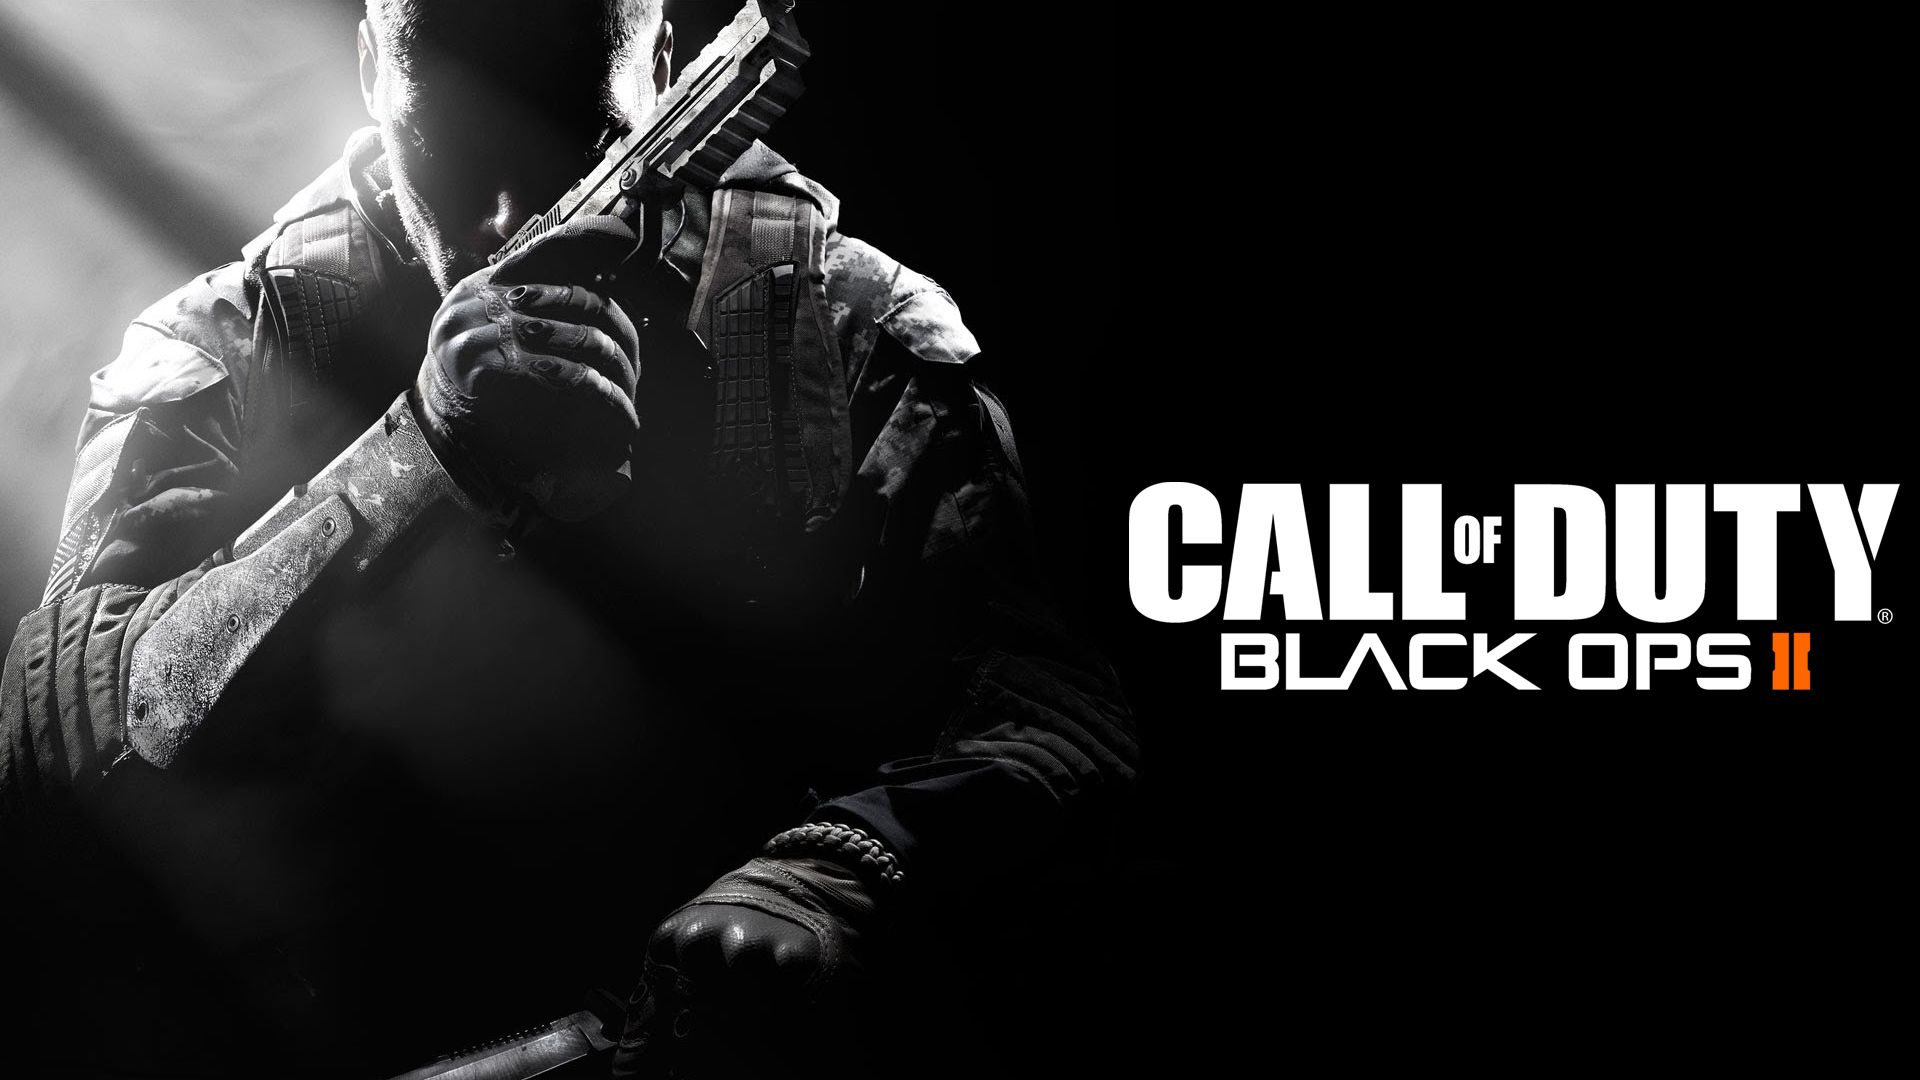 Call of duty black ops 2 patch notes august 22